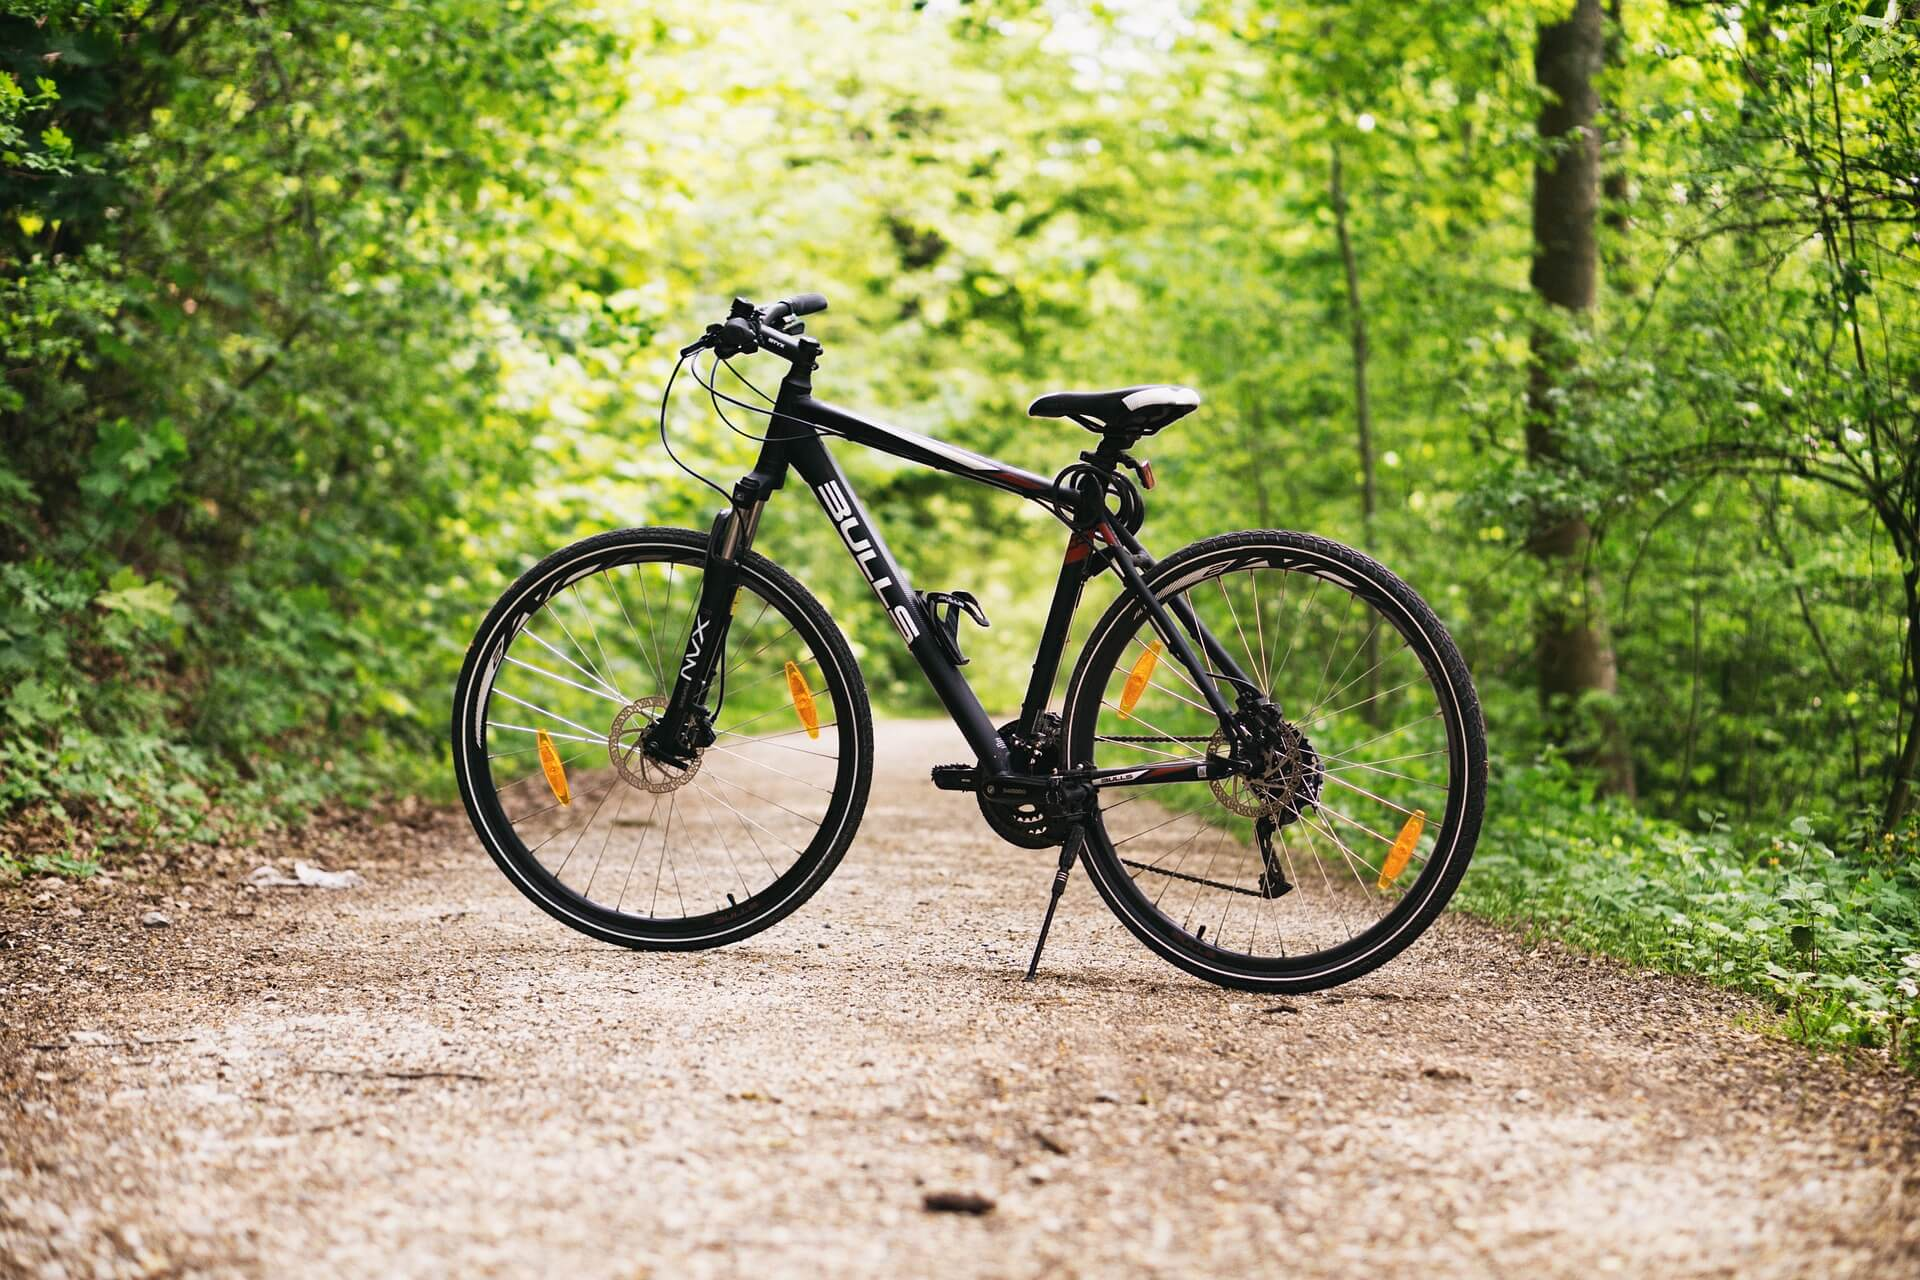 bicycle-1834265_1920 (1)